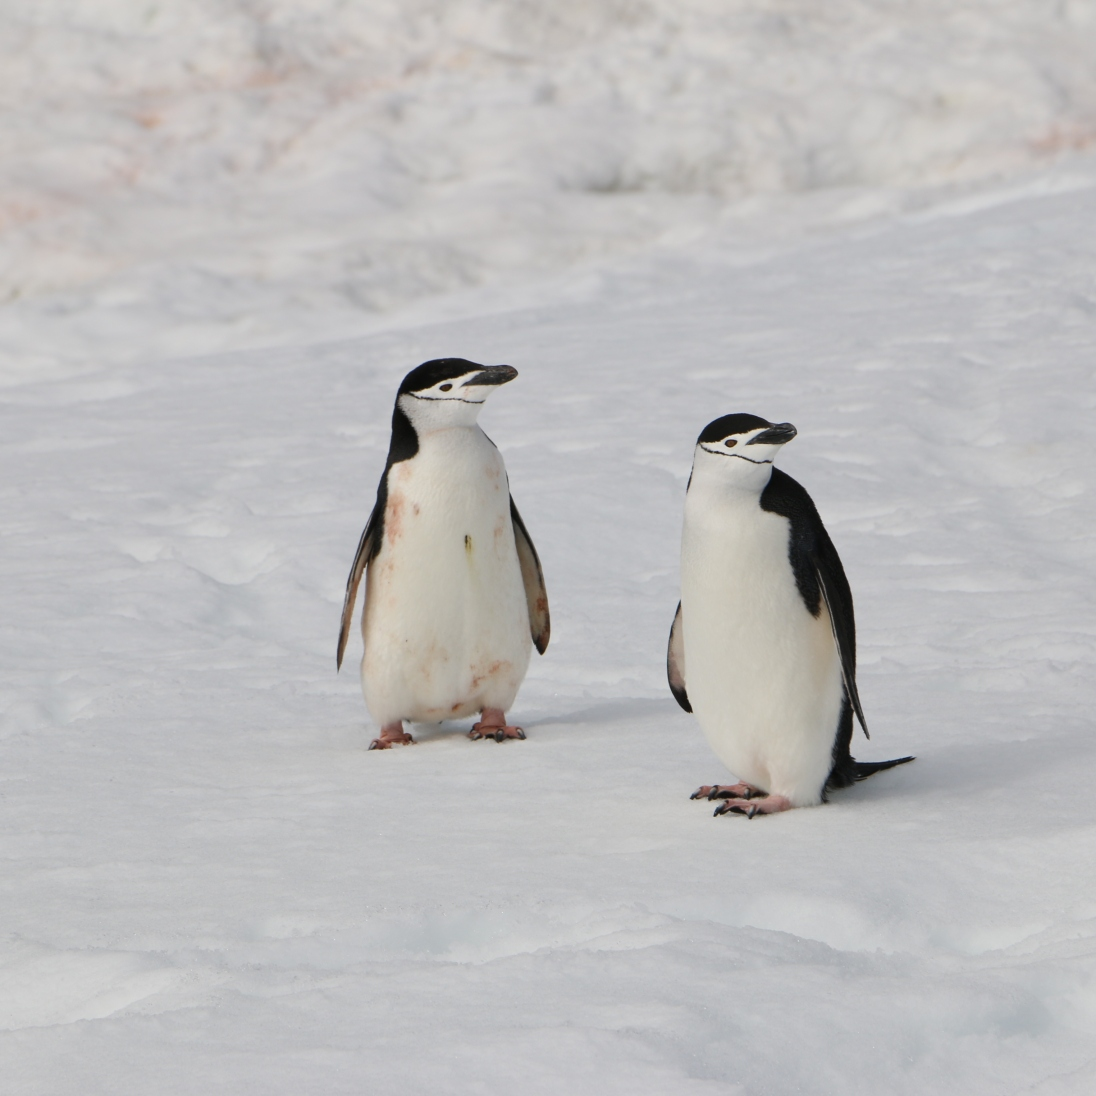 This pair of penguins was intrigued by our group photo. Can you tell who's been pooped on?